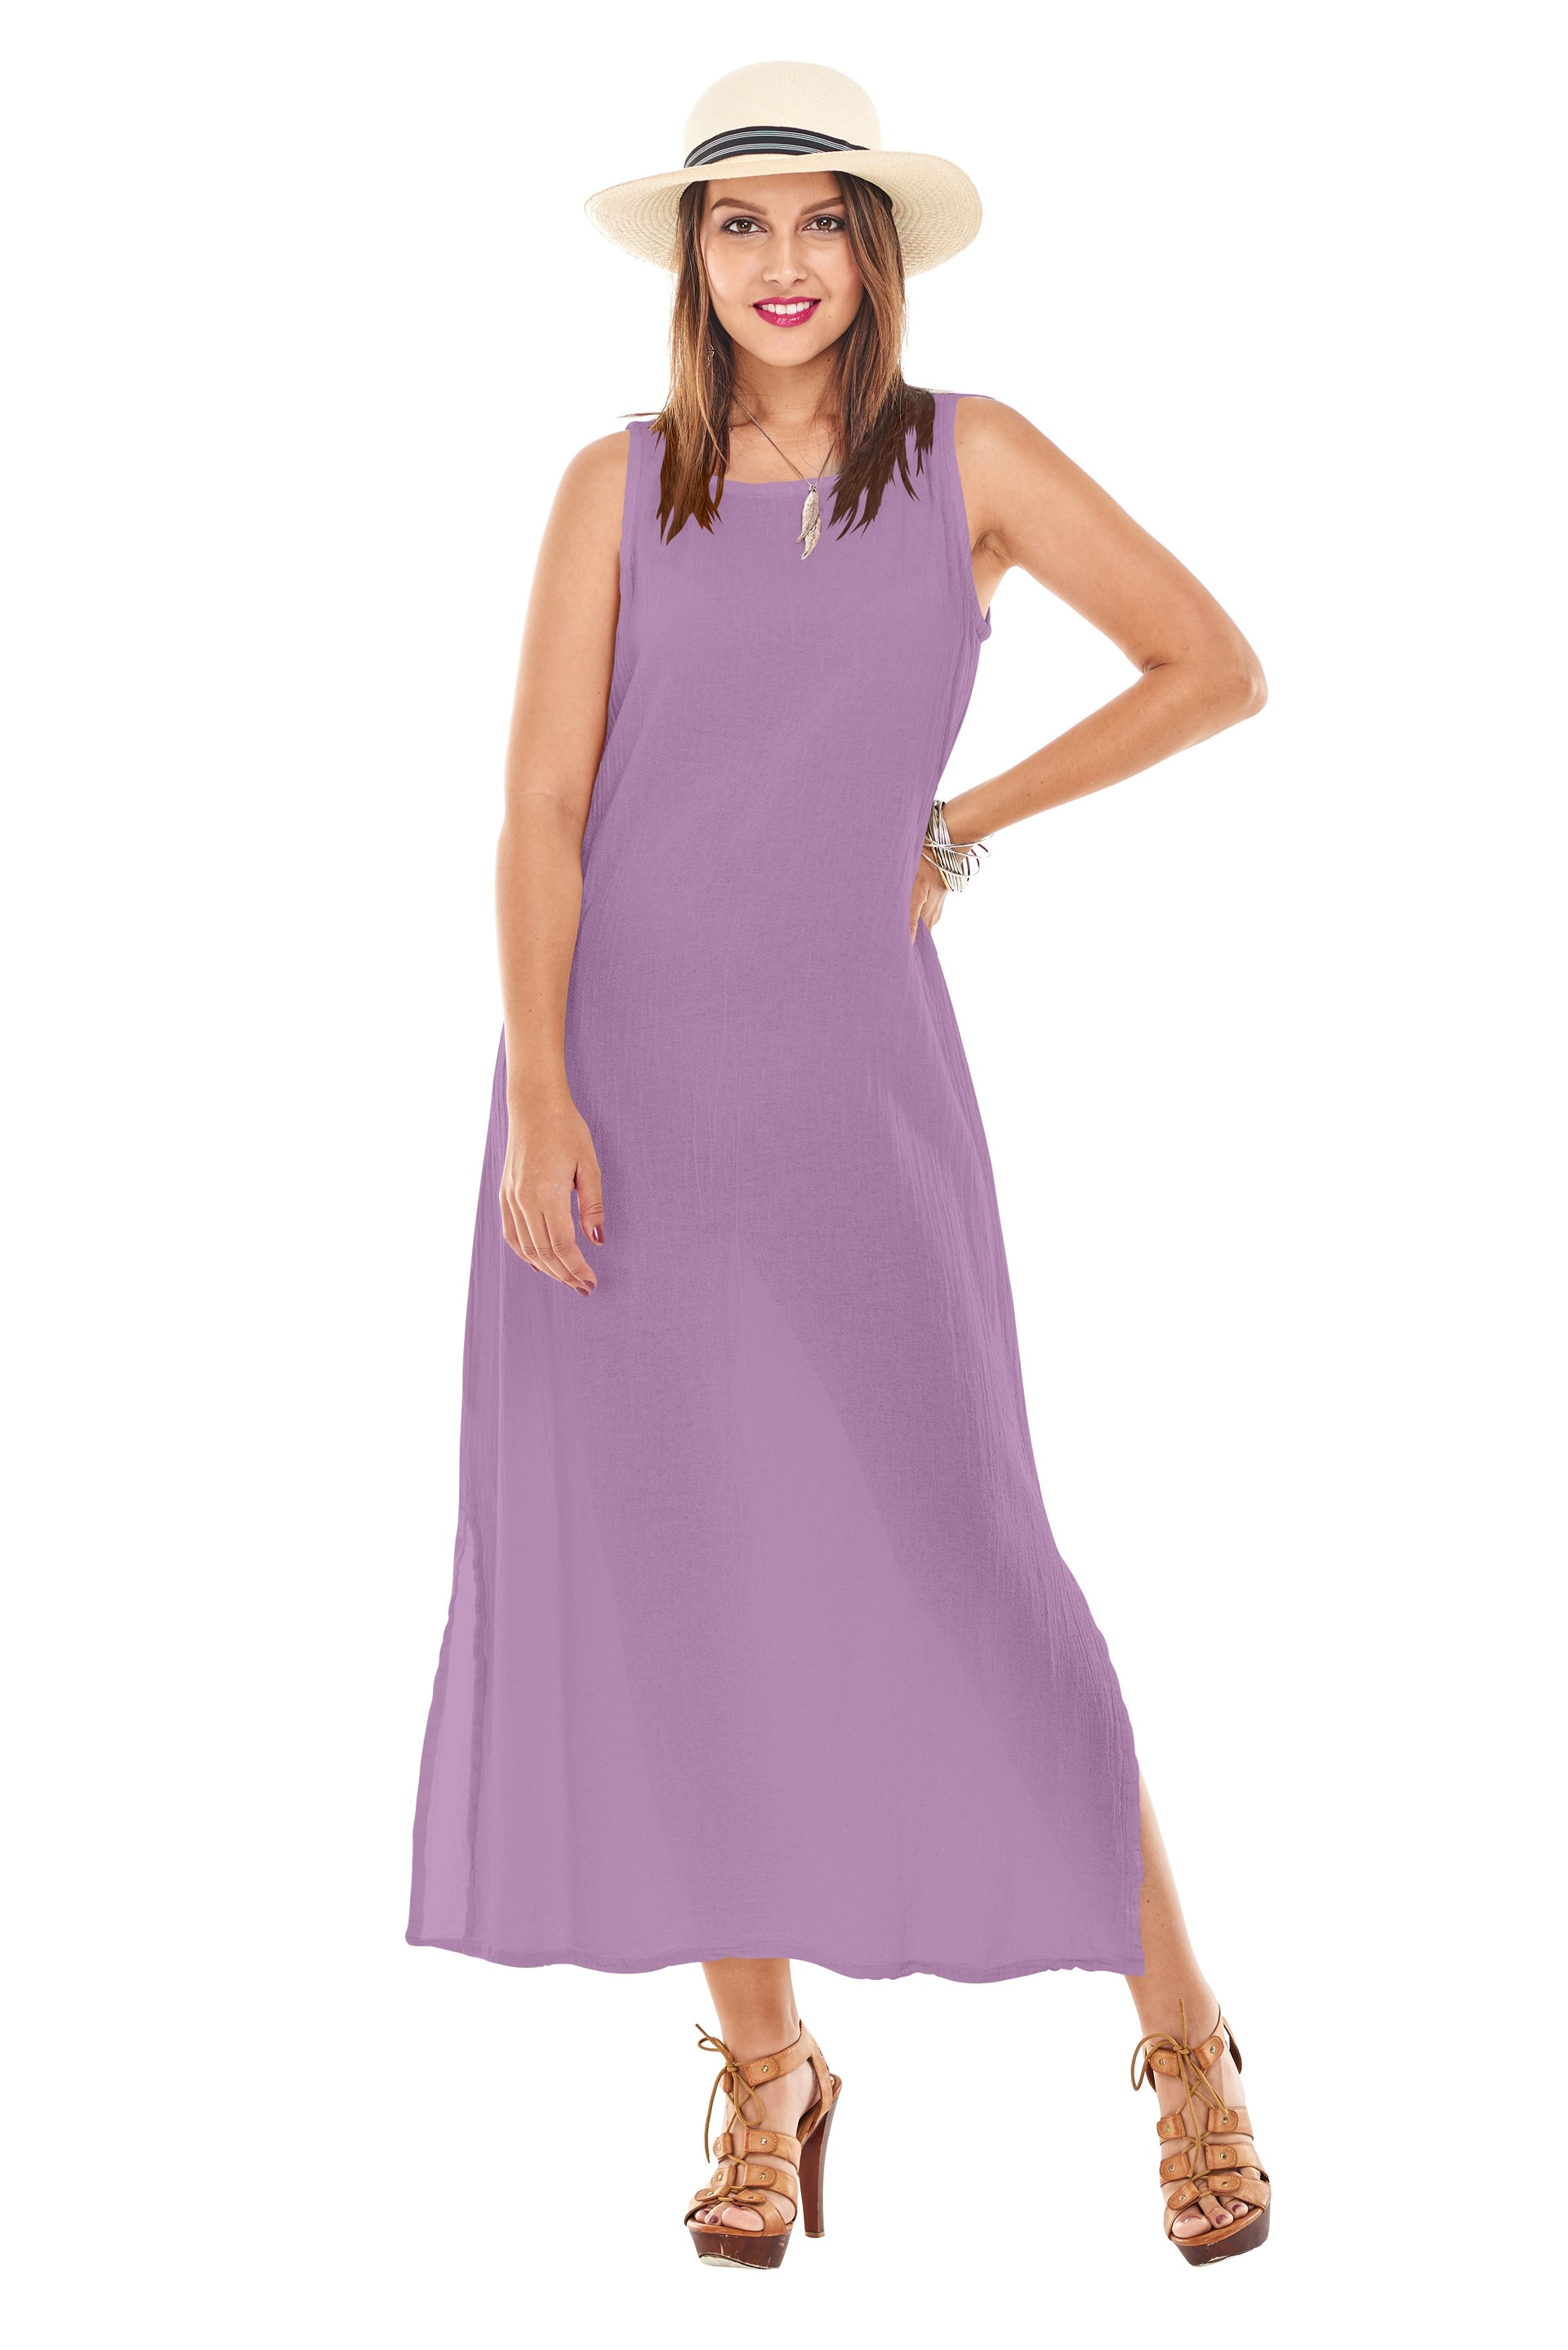 OMG - A simple modern cotton gauze tank dress with side slit detail and great for layering.